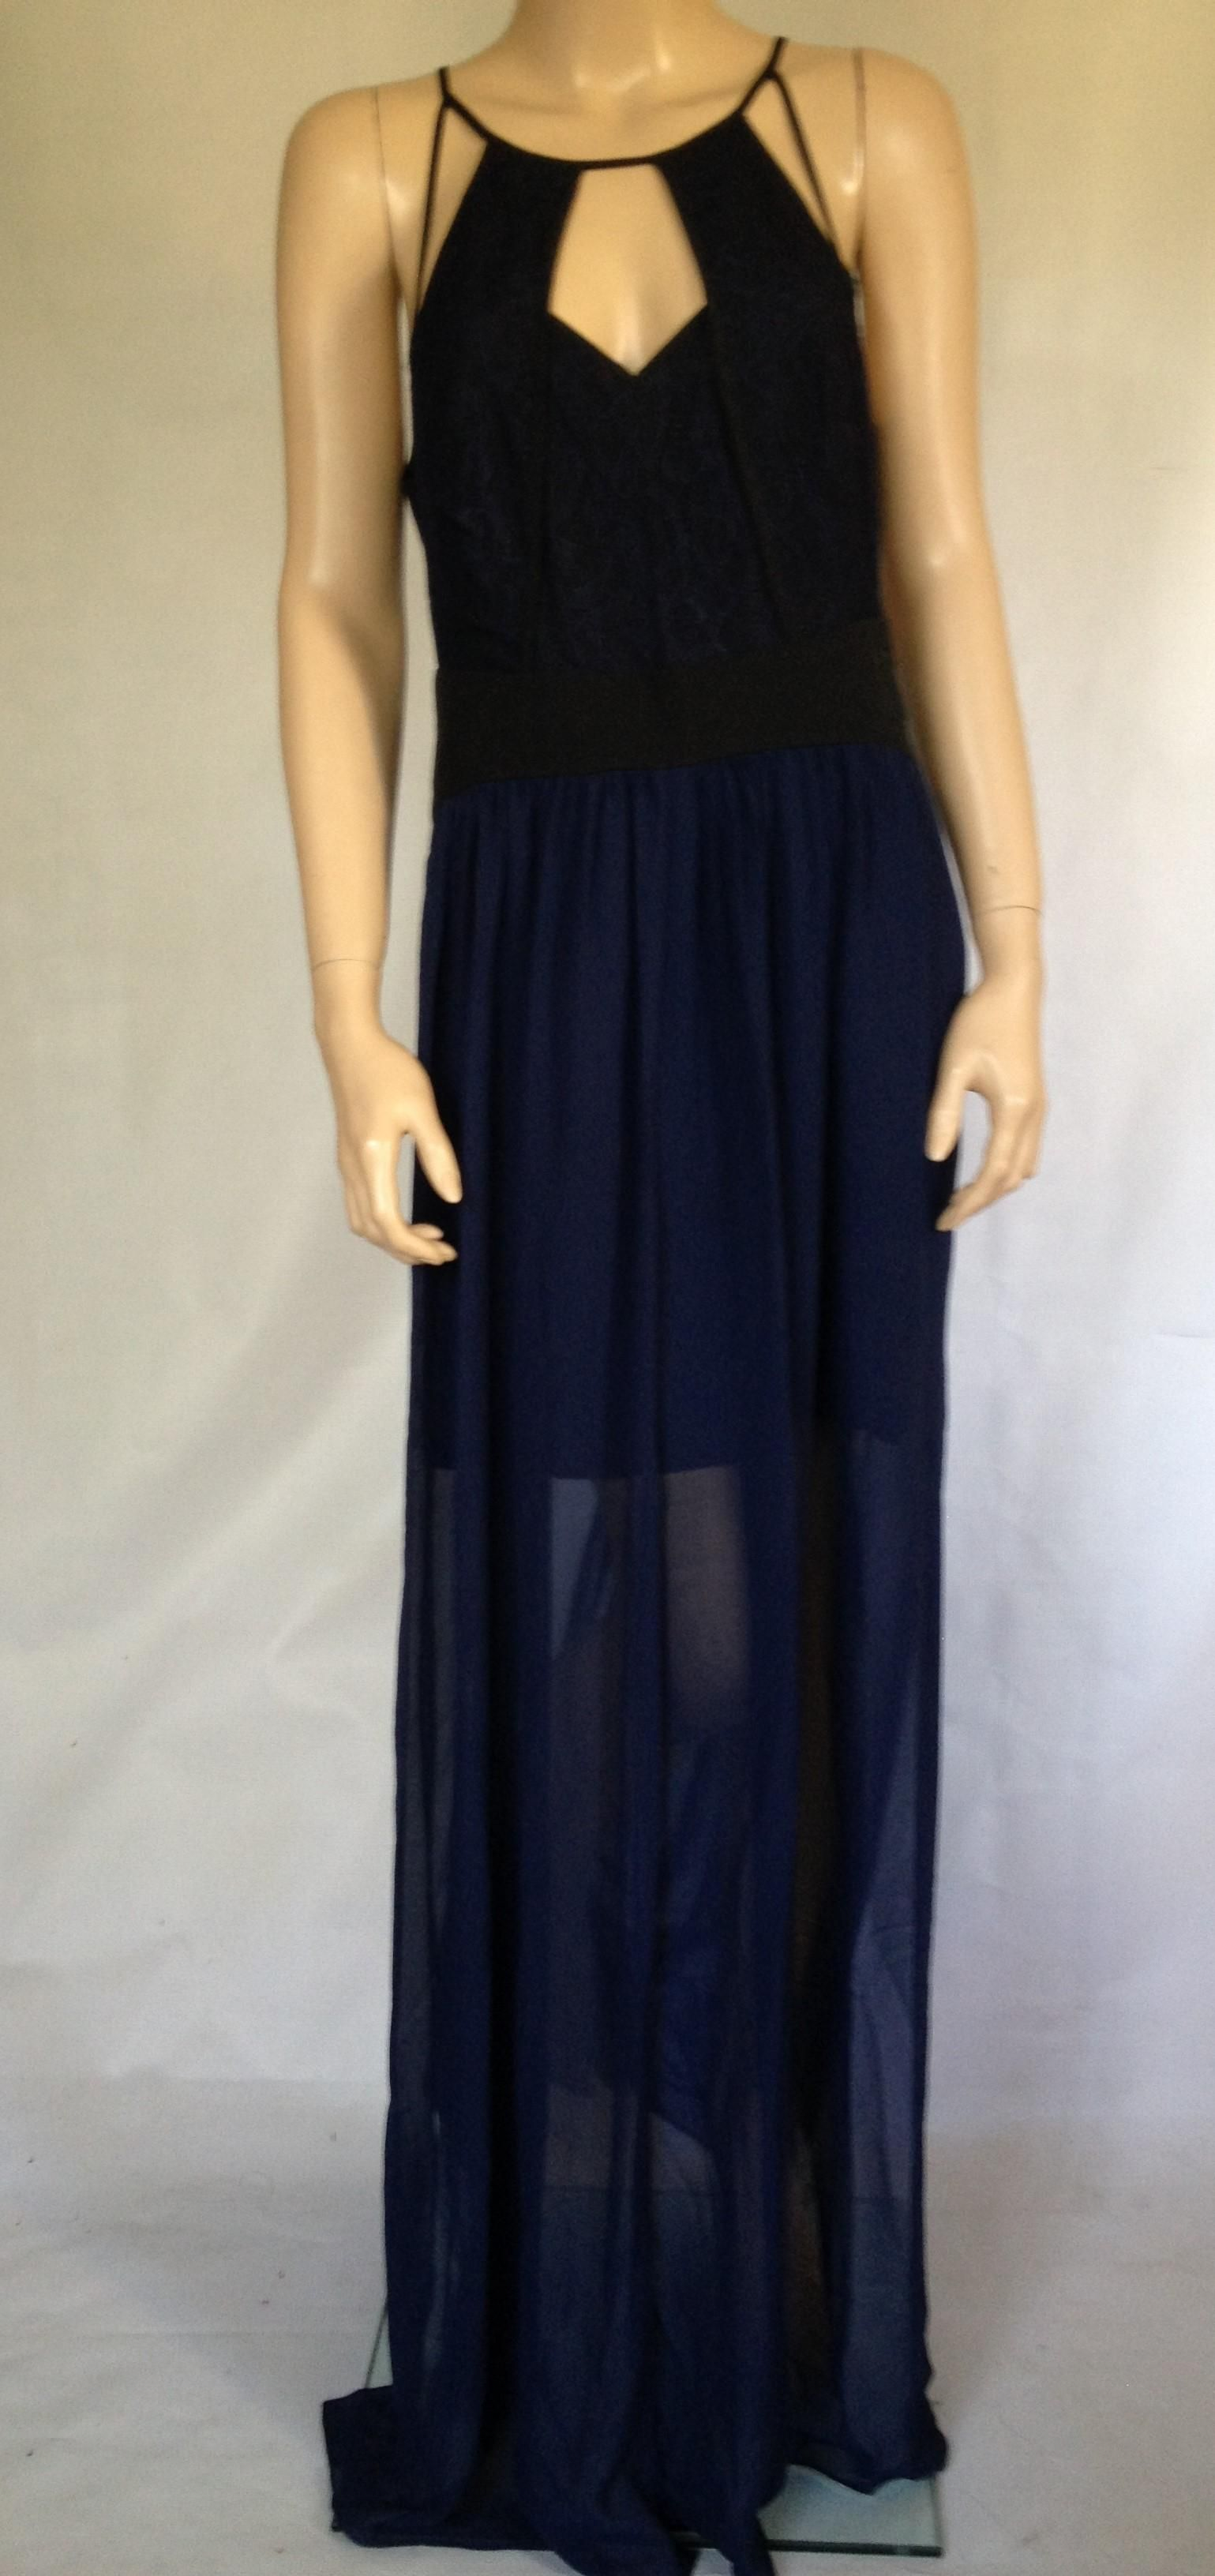 Bcbgeneration Blue Bcbg Black Ball Gown Size 0 Dress Free Shipping And Guaranteed Authenticity On